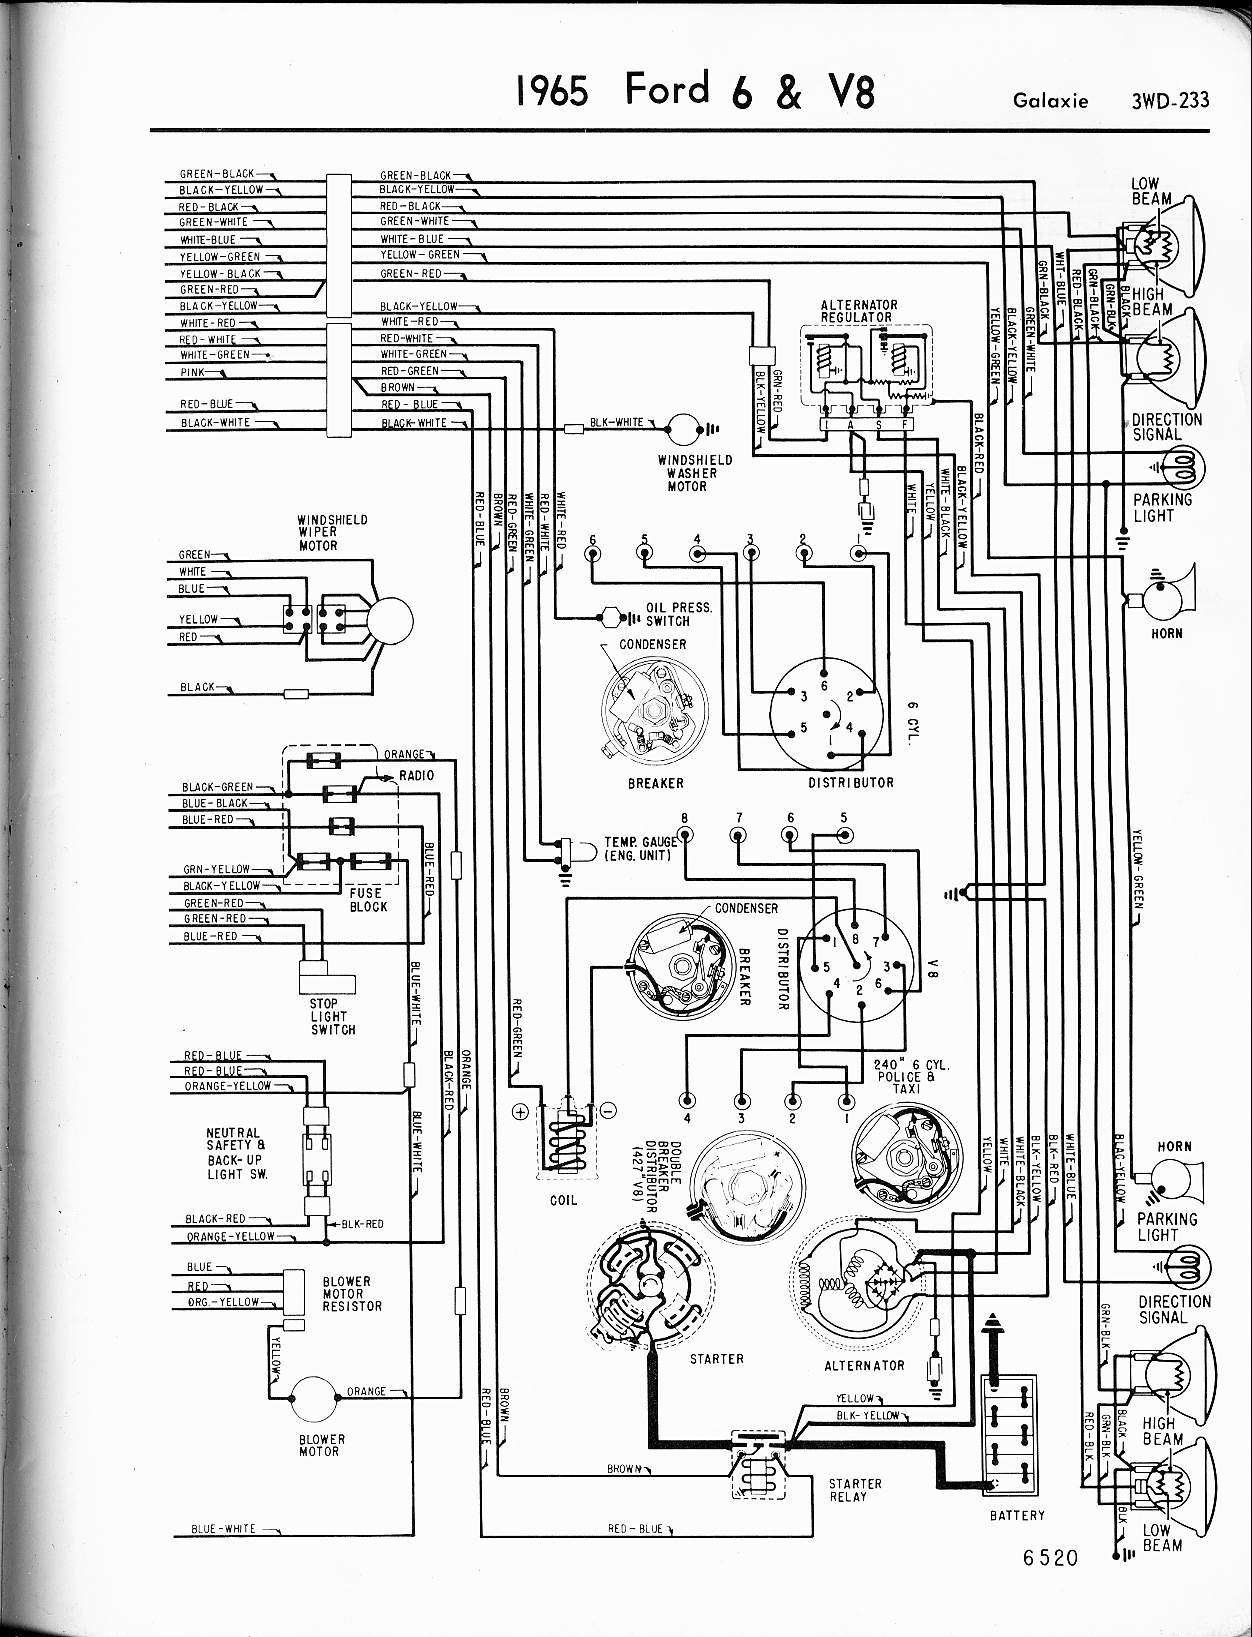 1964 pontiac wiring diagram wiring diagram1968 f100 wiring diagram wiring diagram specialtieswiring diagram ford galaxy 2002 wiring library2002 ford focus spark